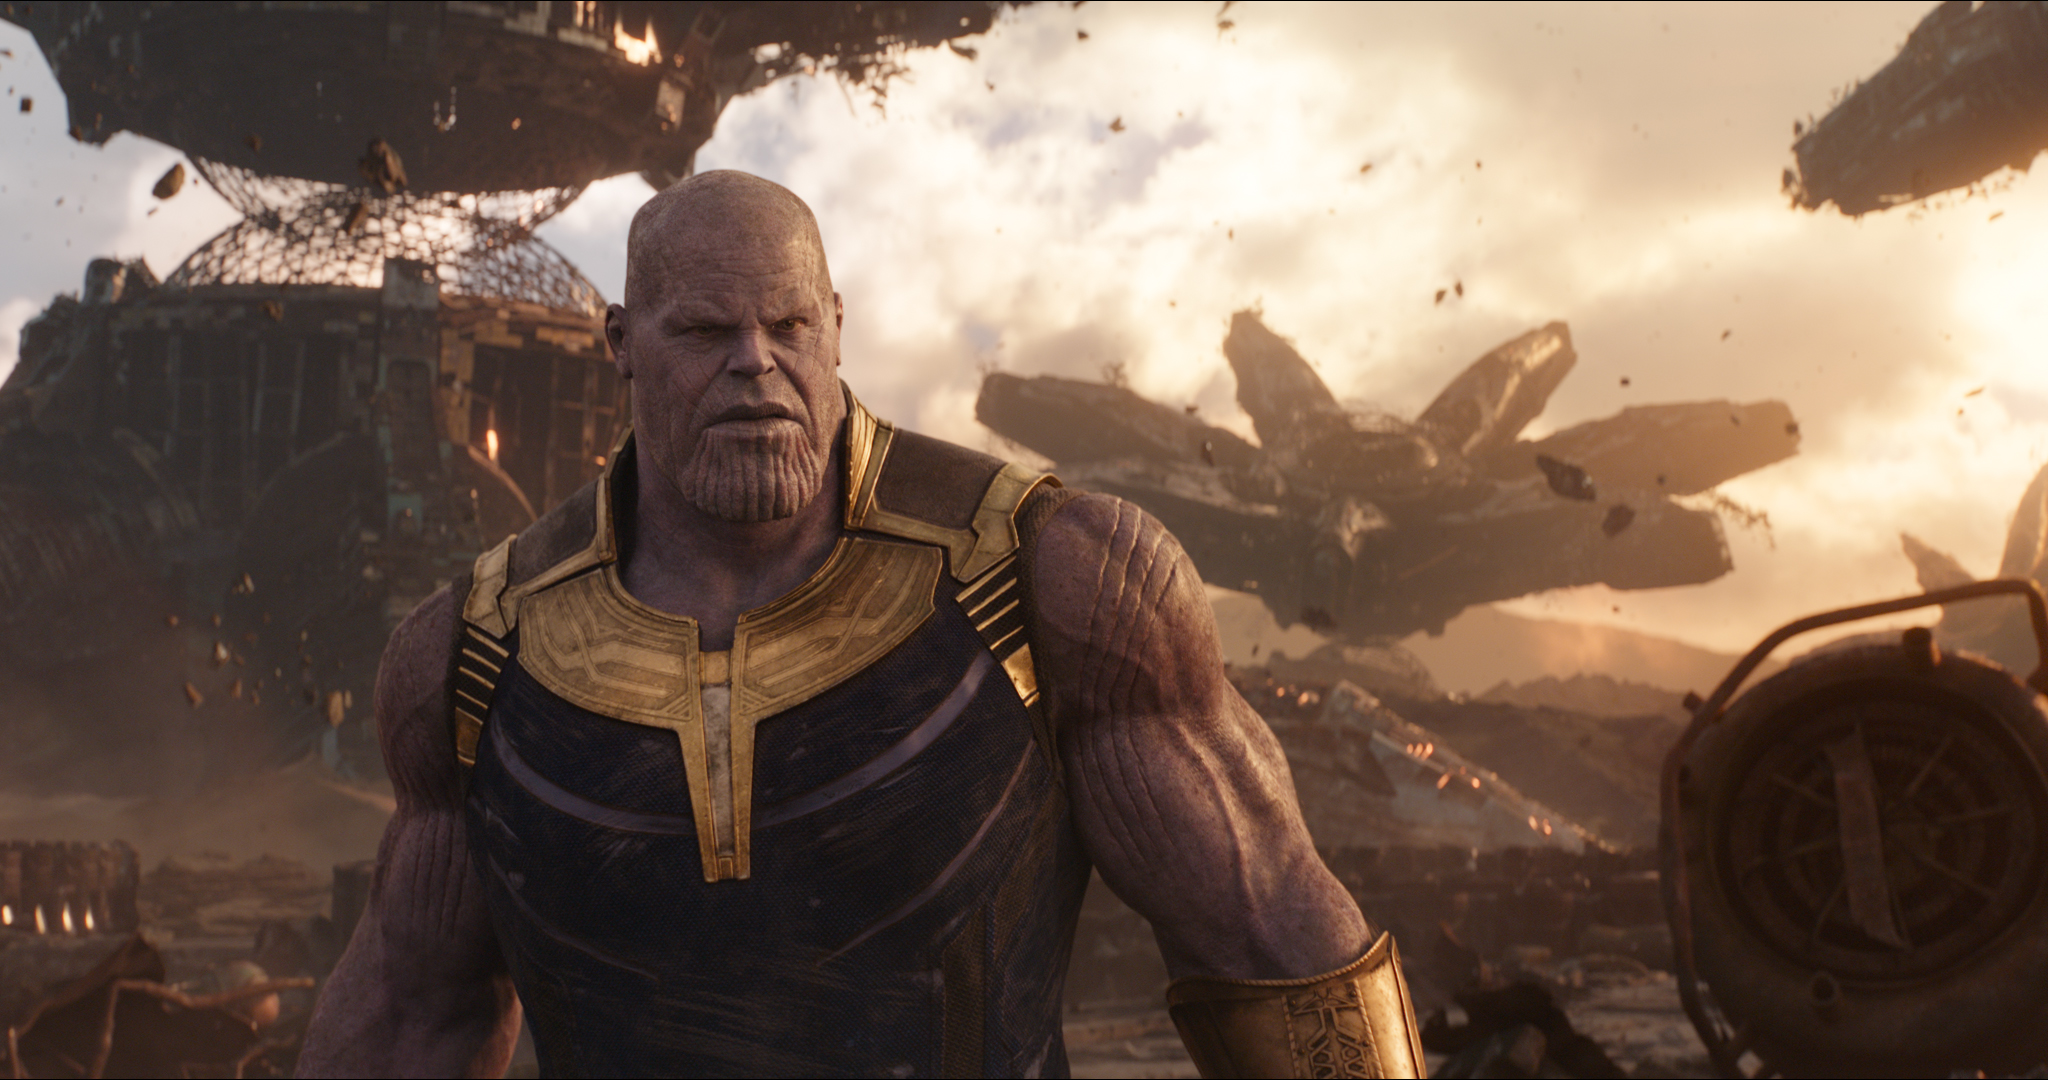 A Thanos-inspired subreddit is about to ban more than 100,000 members